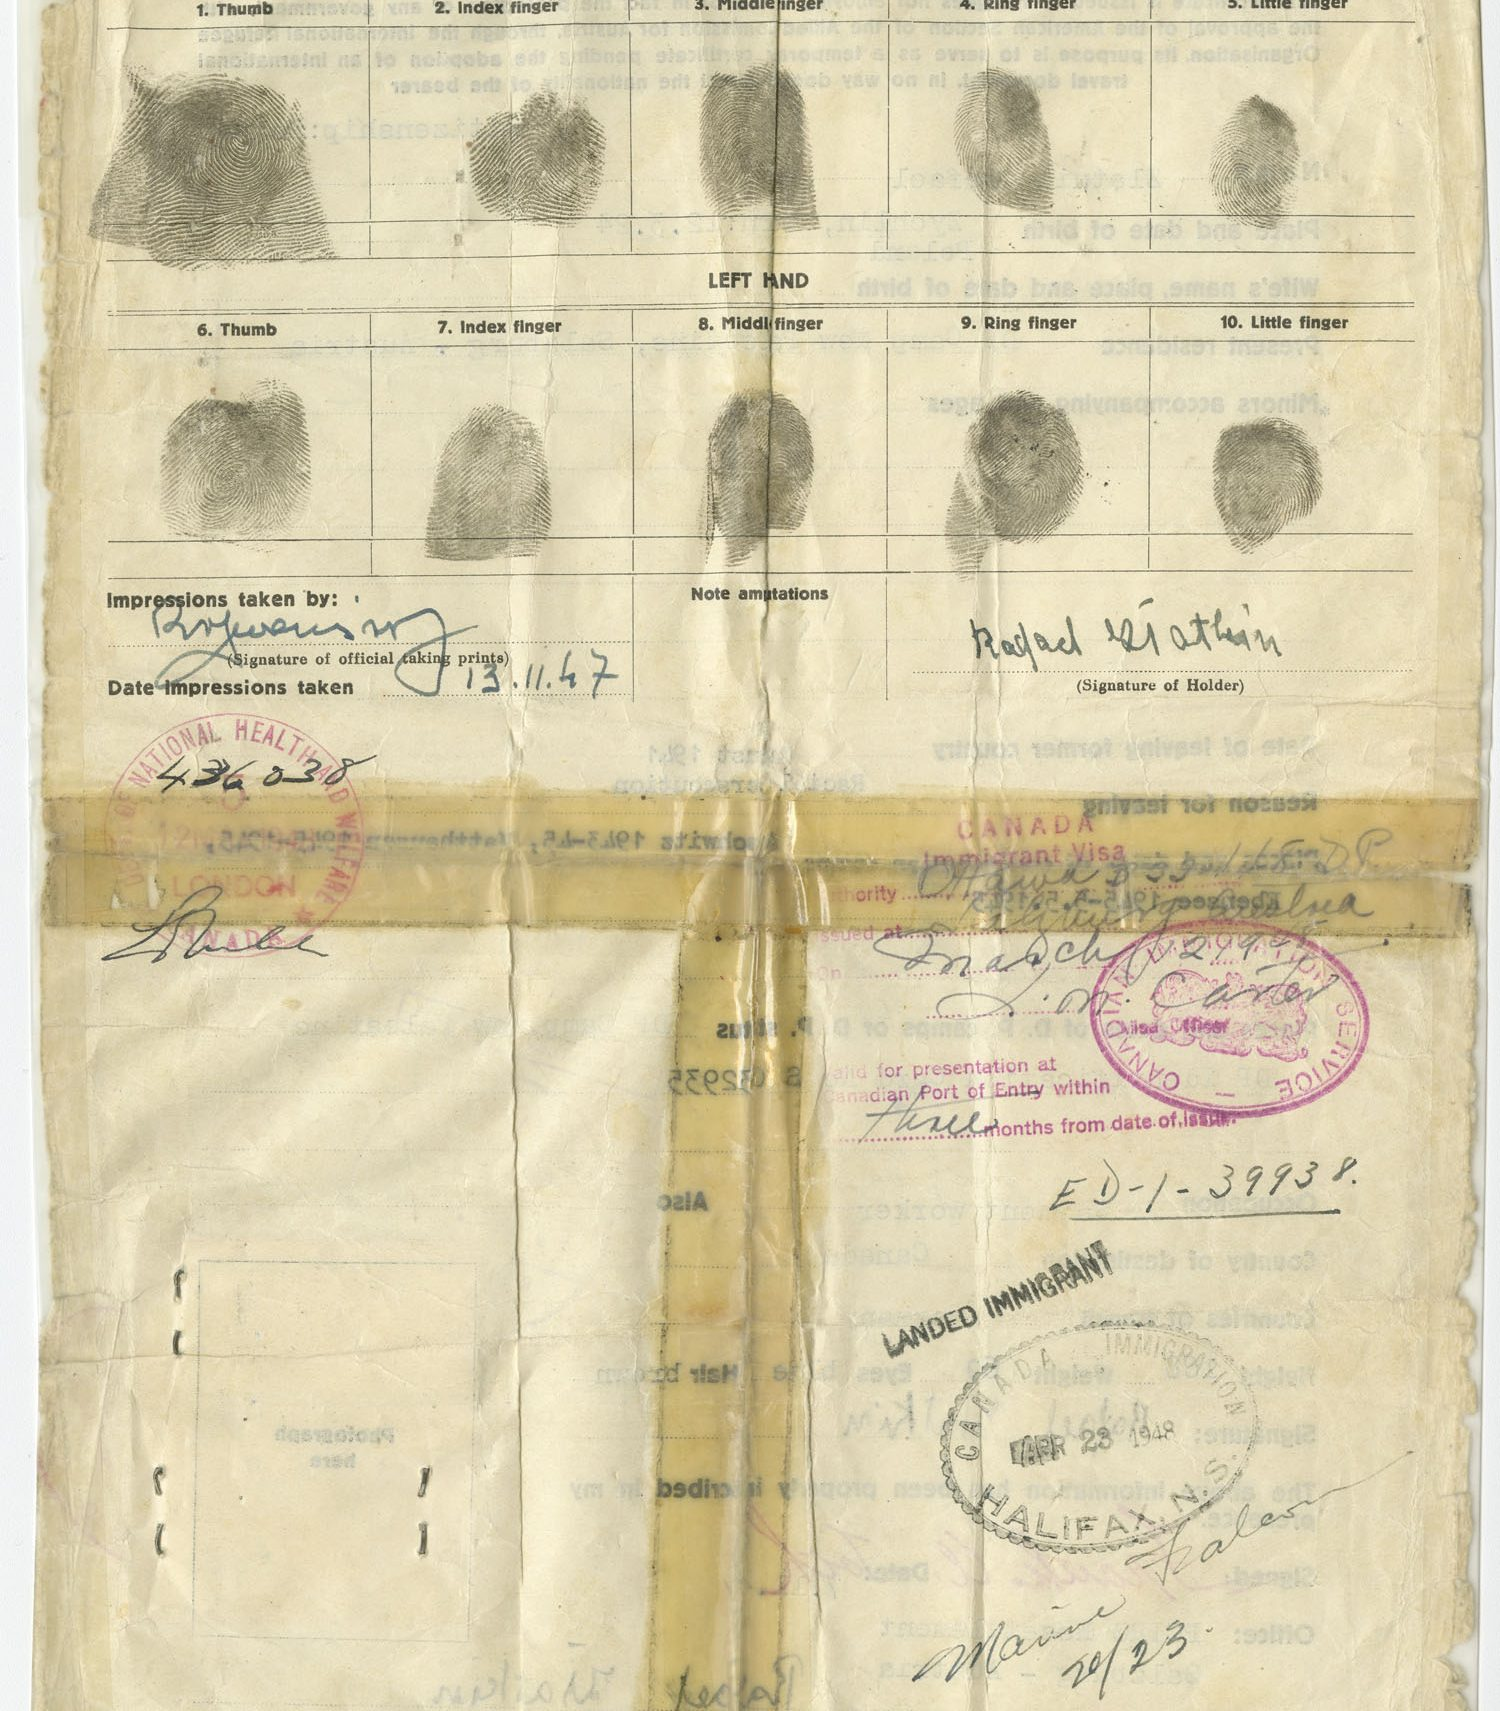 On the back of the document, Rafael's fingerprints and the stamp from his arrival at Pier 21 in Halifax in 1948 are still visible.